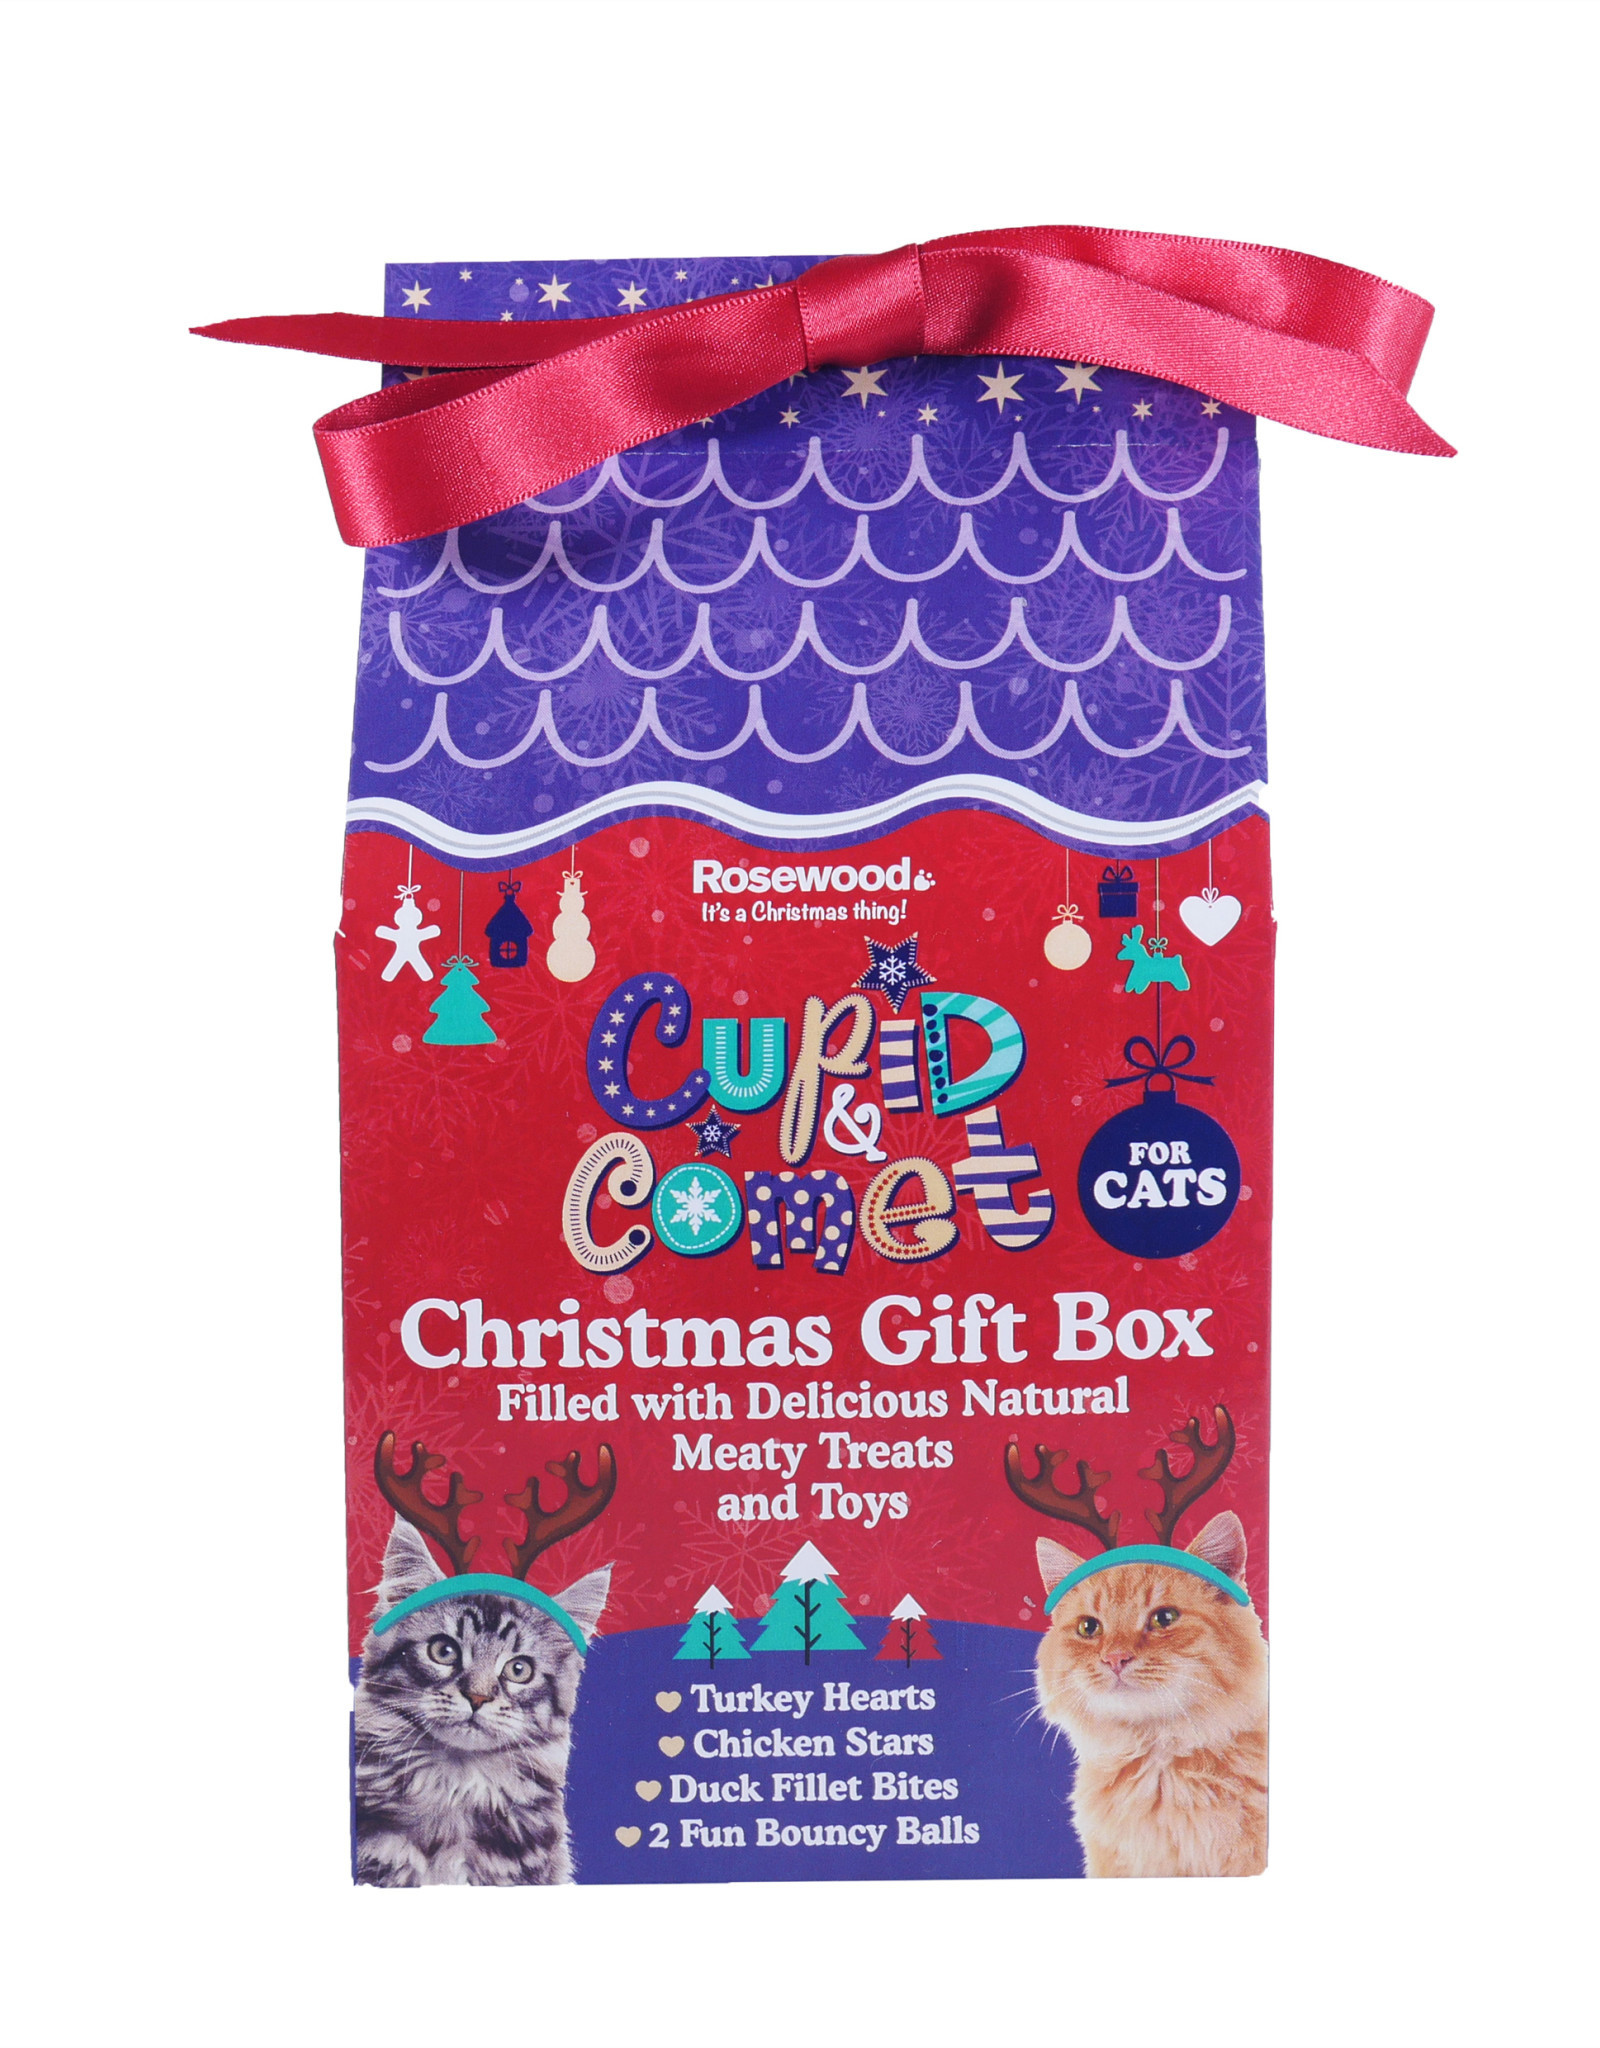 Rosewood Christmas Christmas Gift Box for Cats, 100g